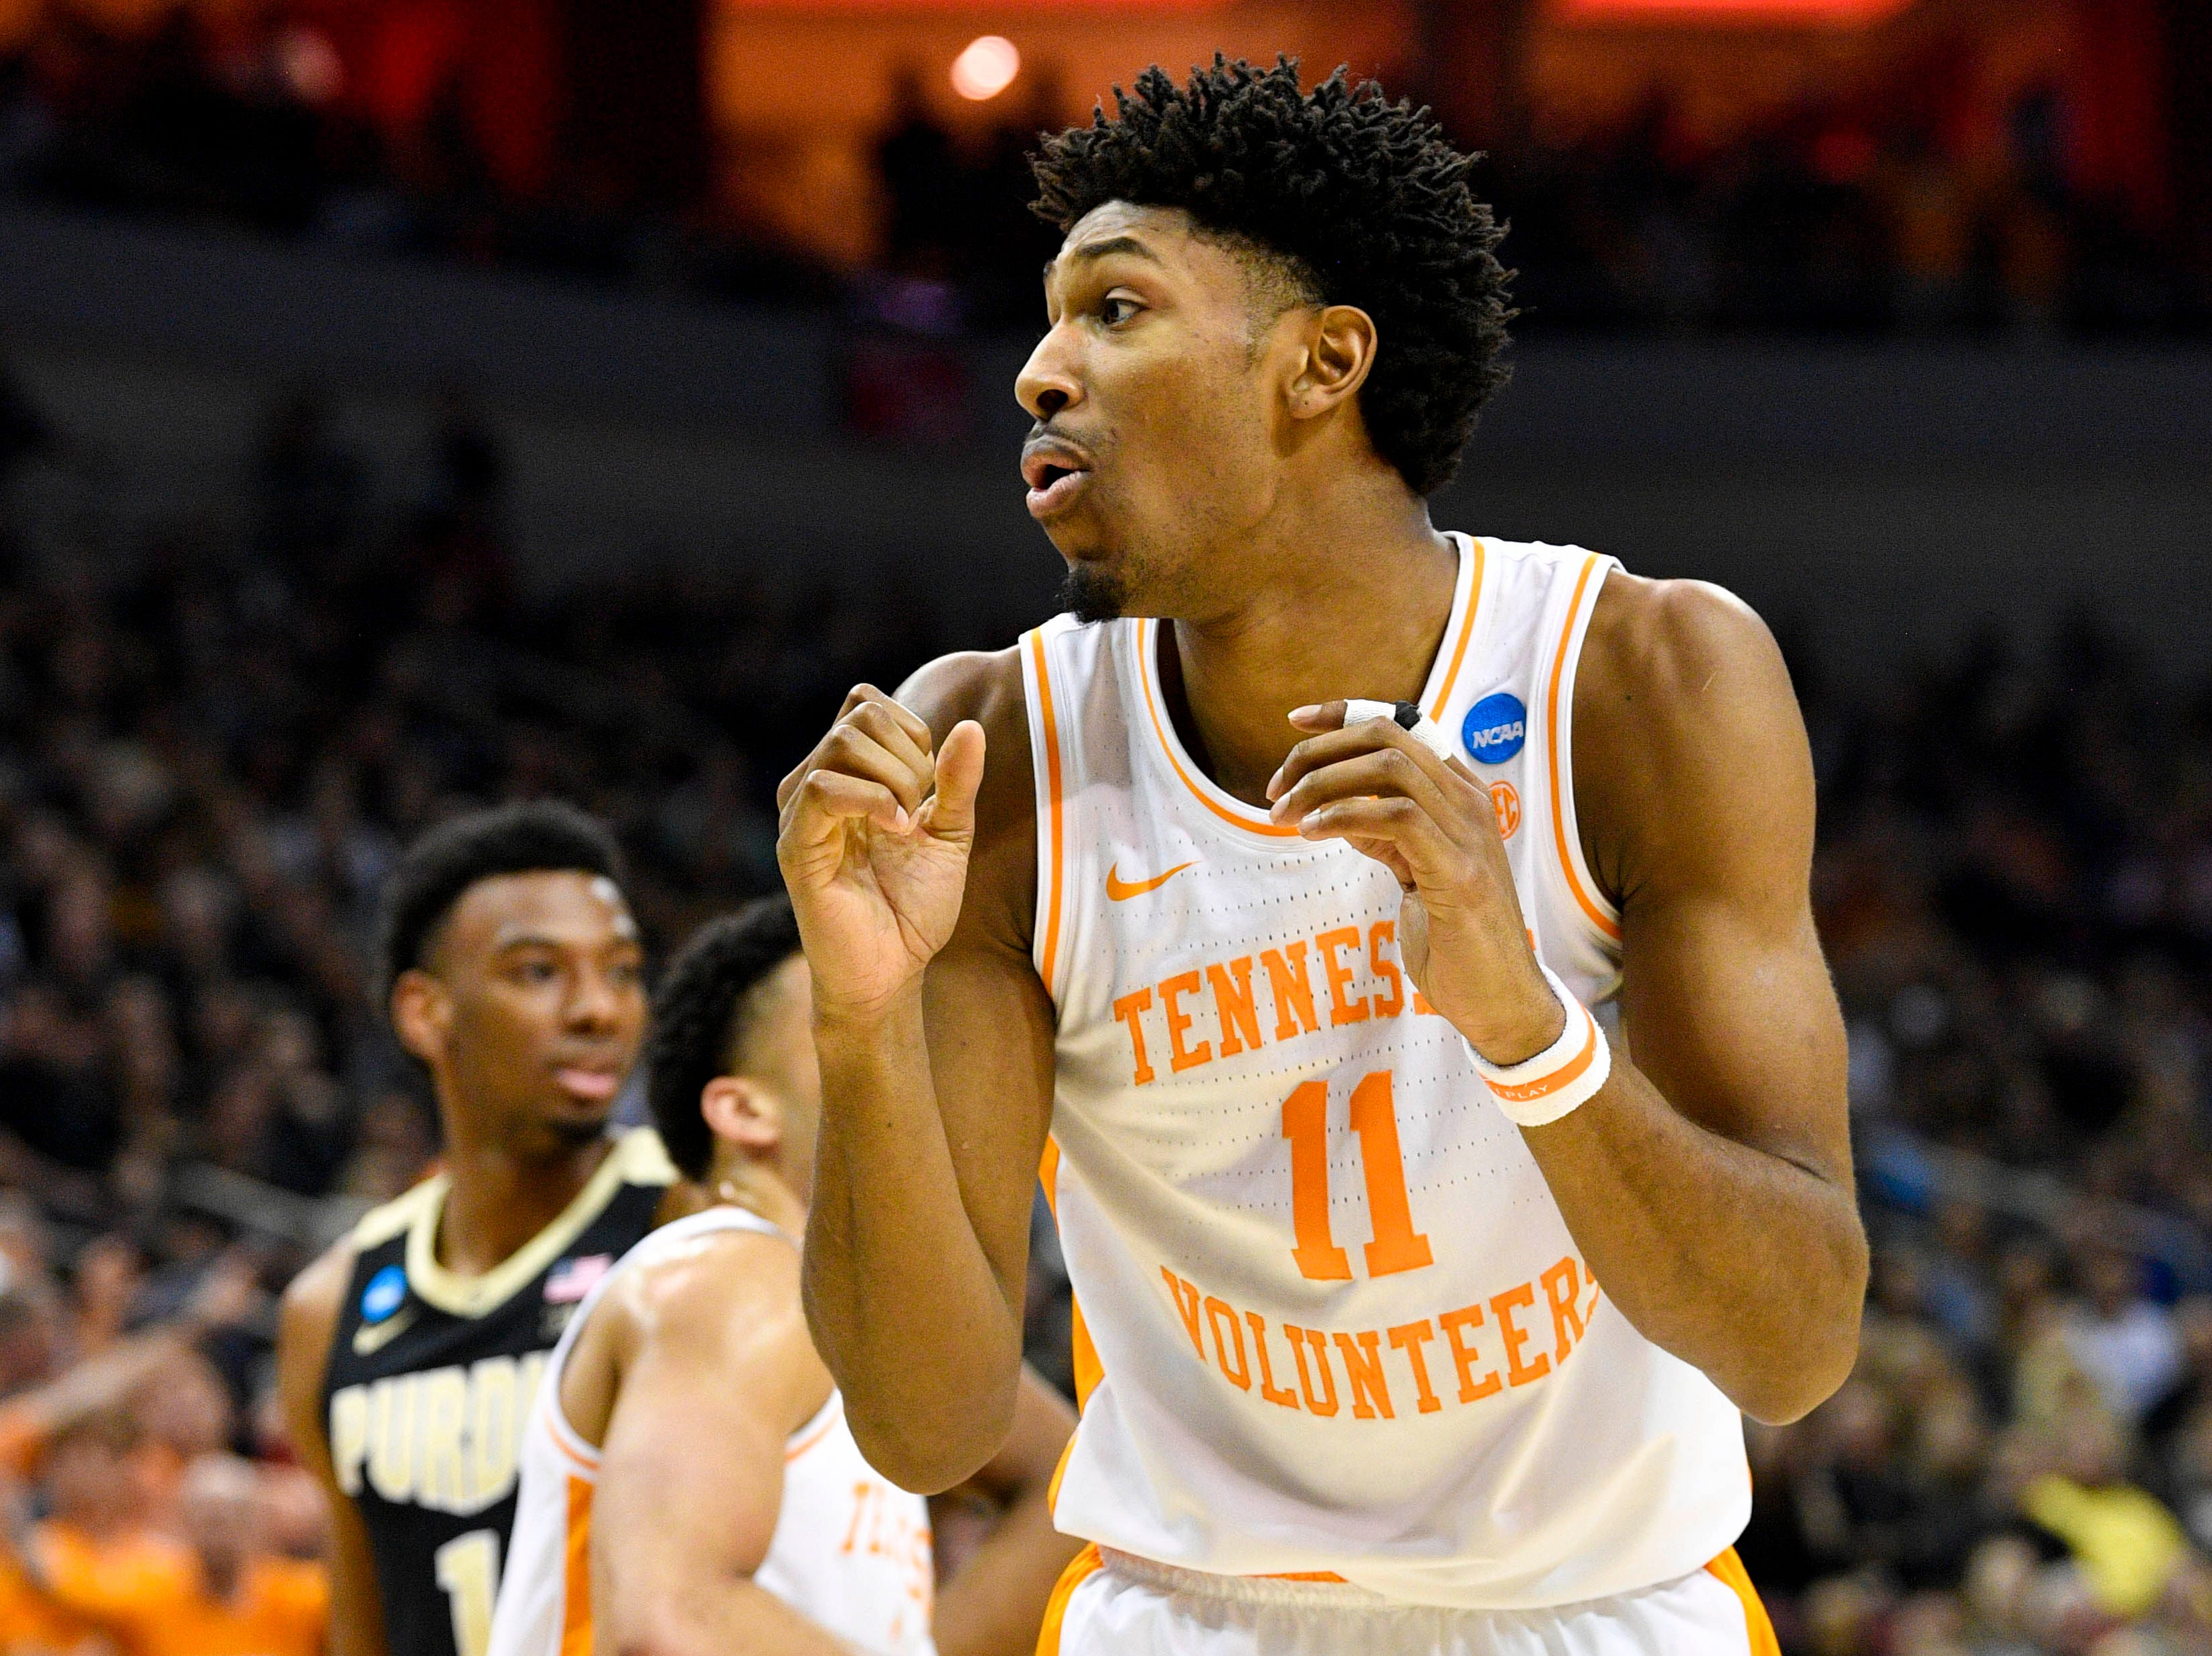 Mar 28, 2019; Louisville, KY, United States; Tennessee Volunteers forward Kyle Alexander (11) reacts during the first half in the semifinals of the south regional against the Purdue Boilermakers of the 2019 NCAA Tournament at KFC Yum Center. Mandatory Credit: Jamie Rhodes-USA TODAY Sports